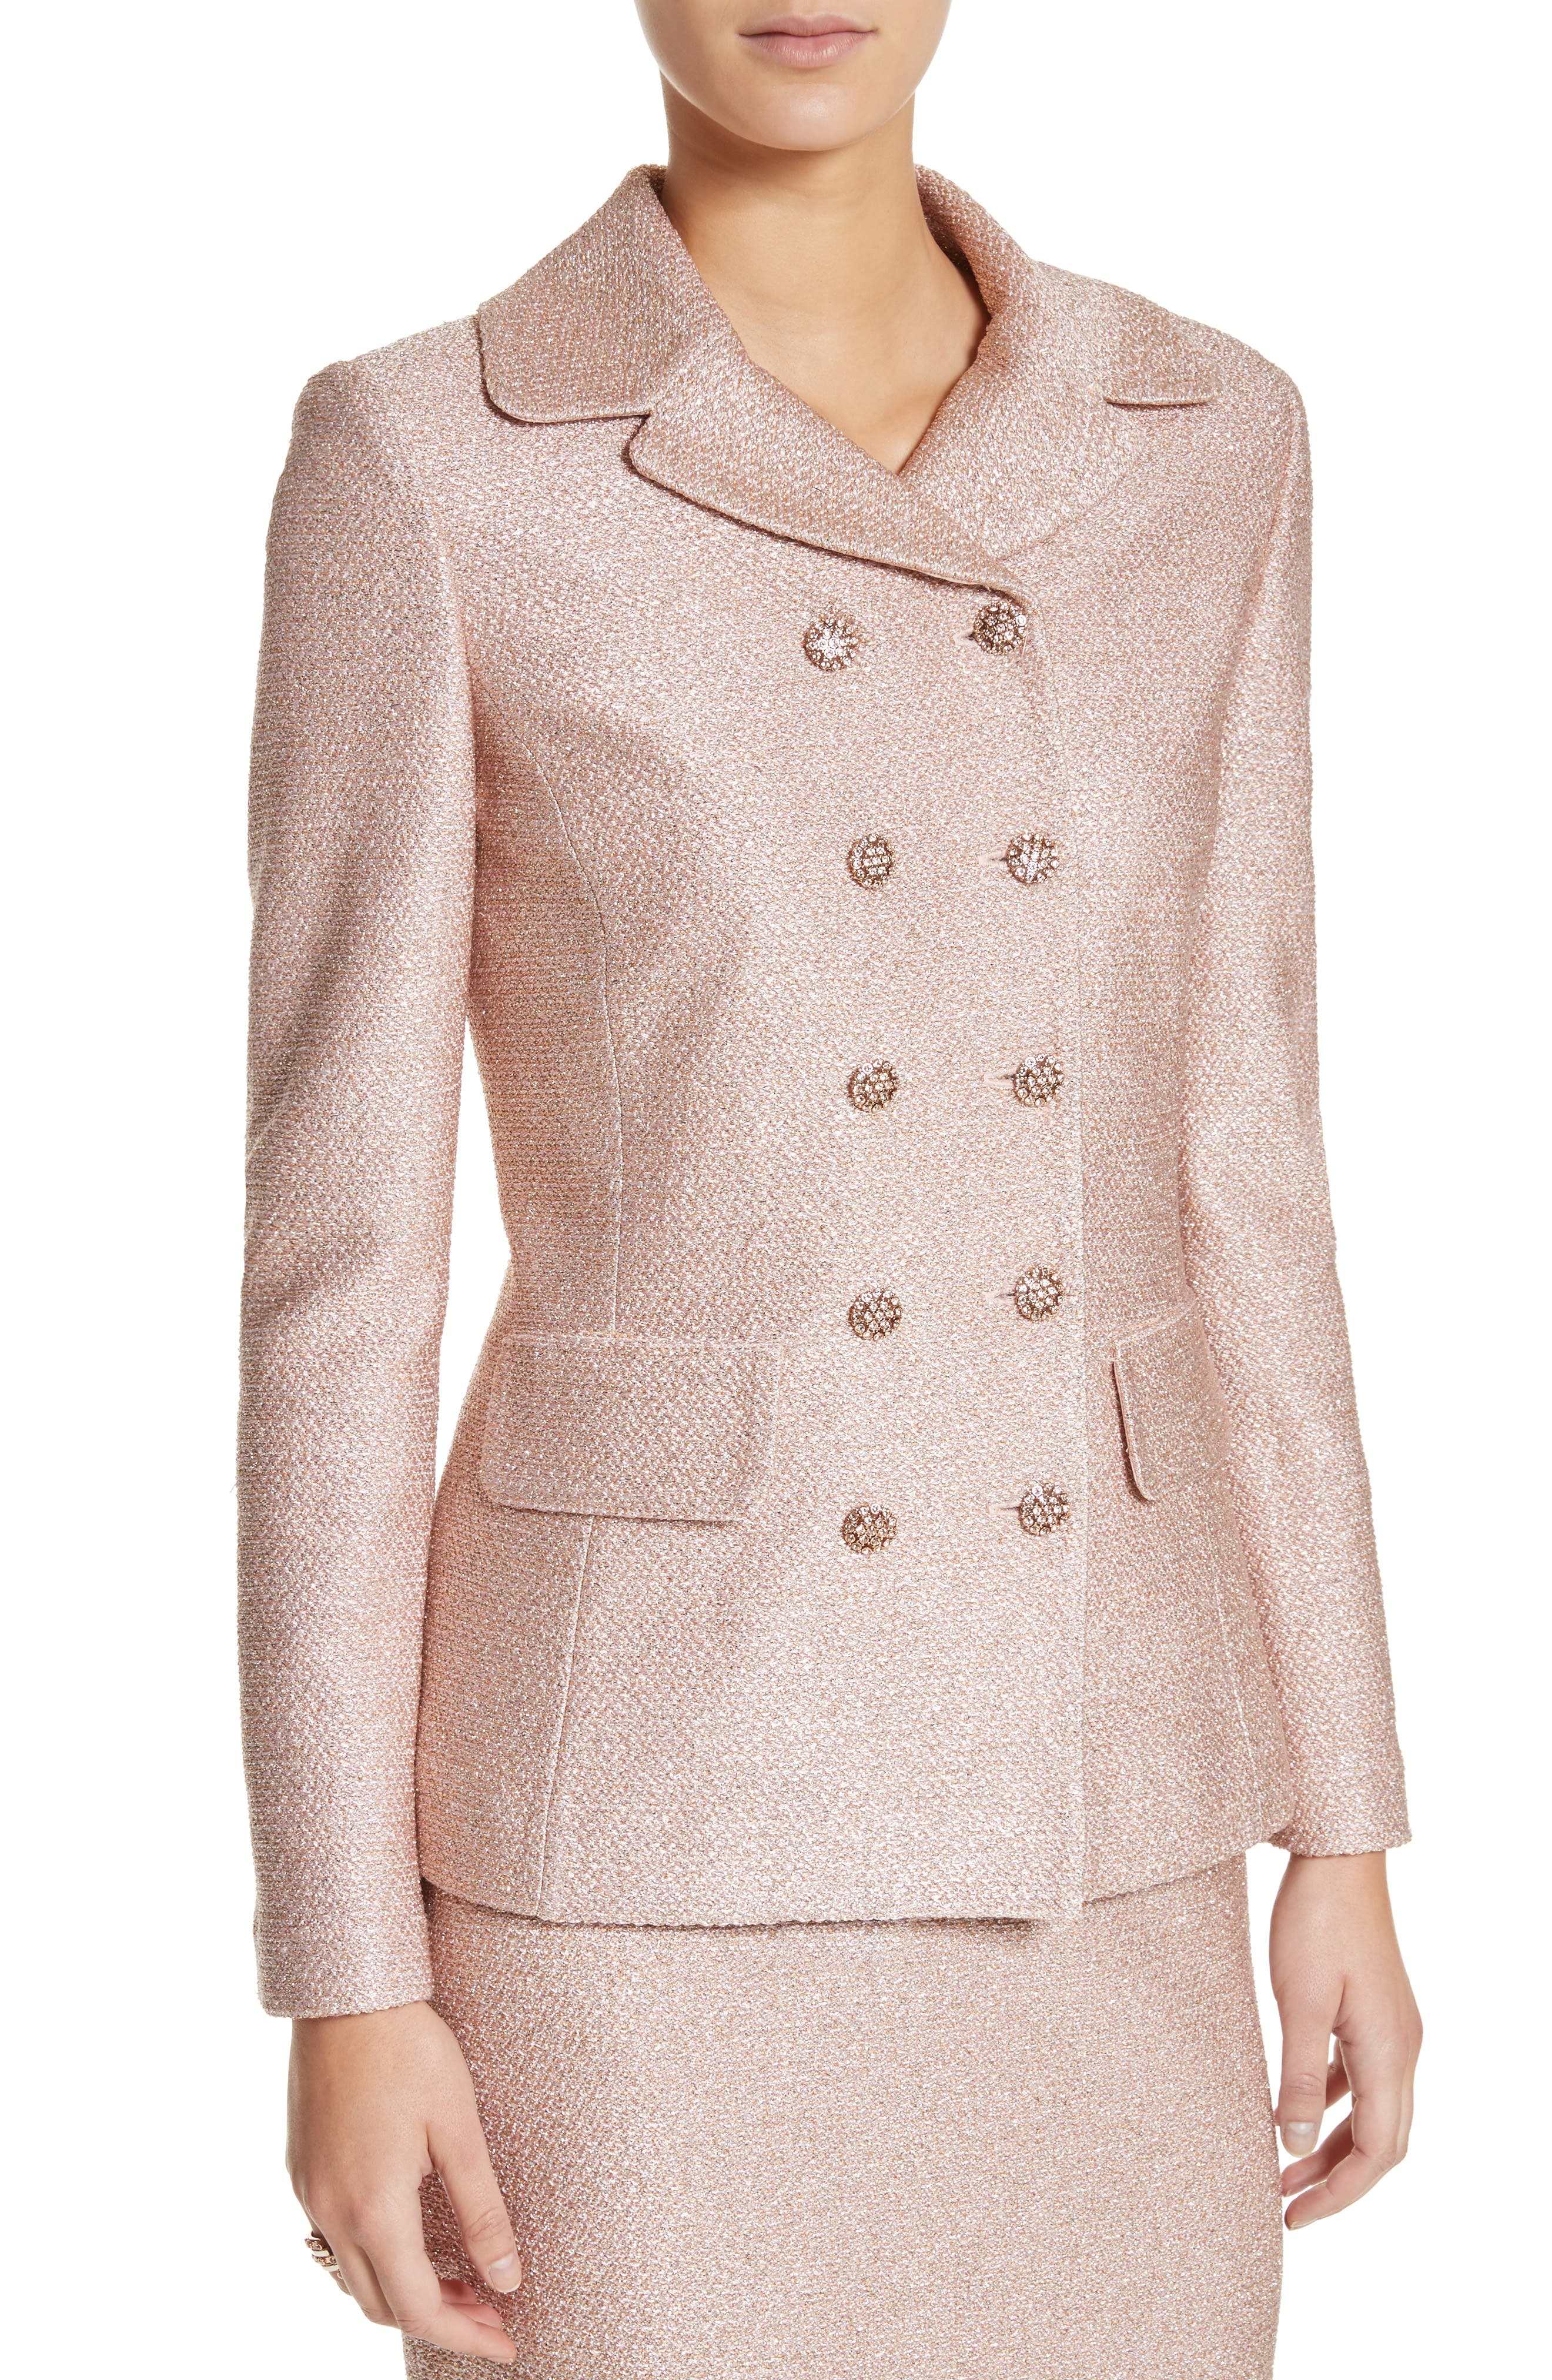 Double Breasted Frosted Metallic Knit Jacket,                             Alternate thumbnail 4, color,                             660